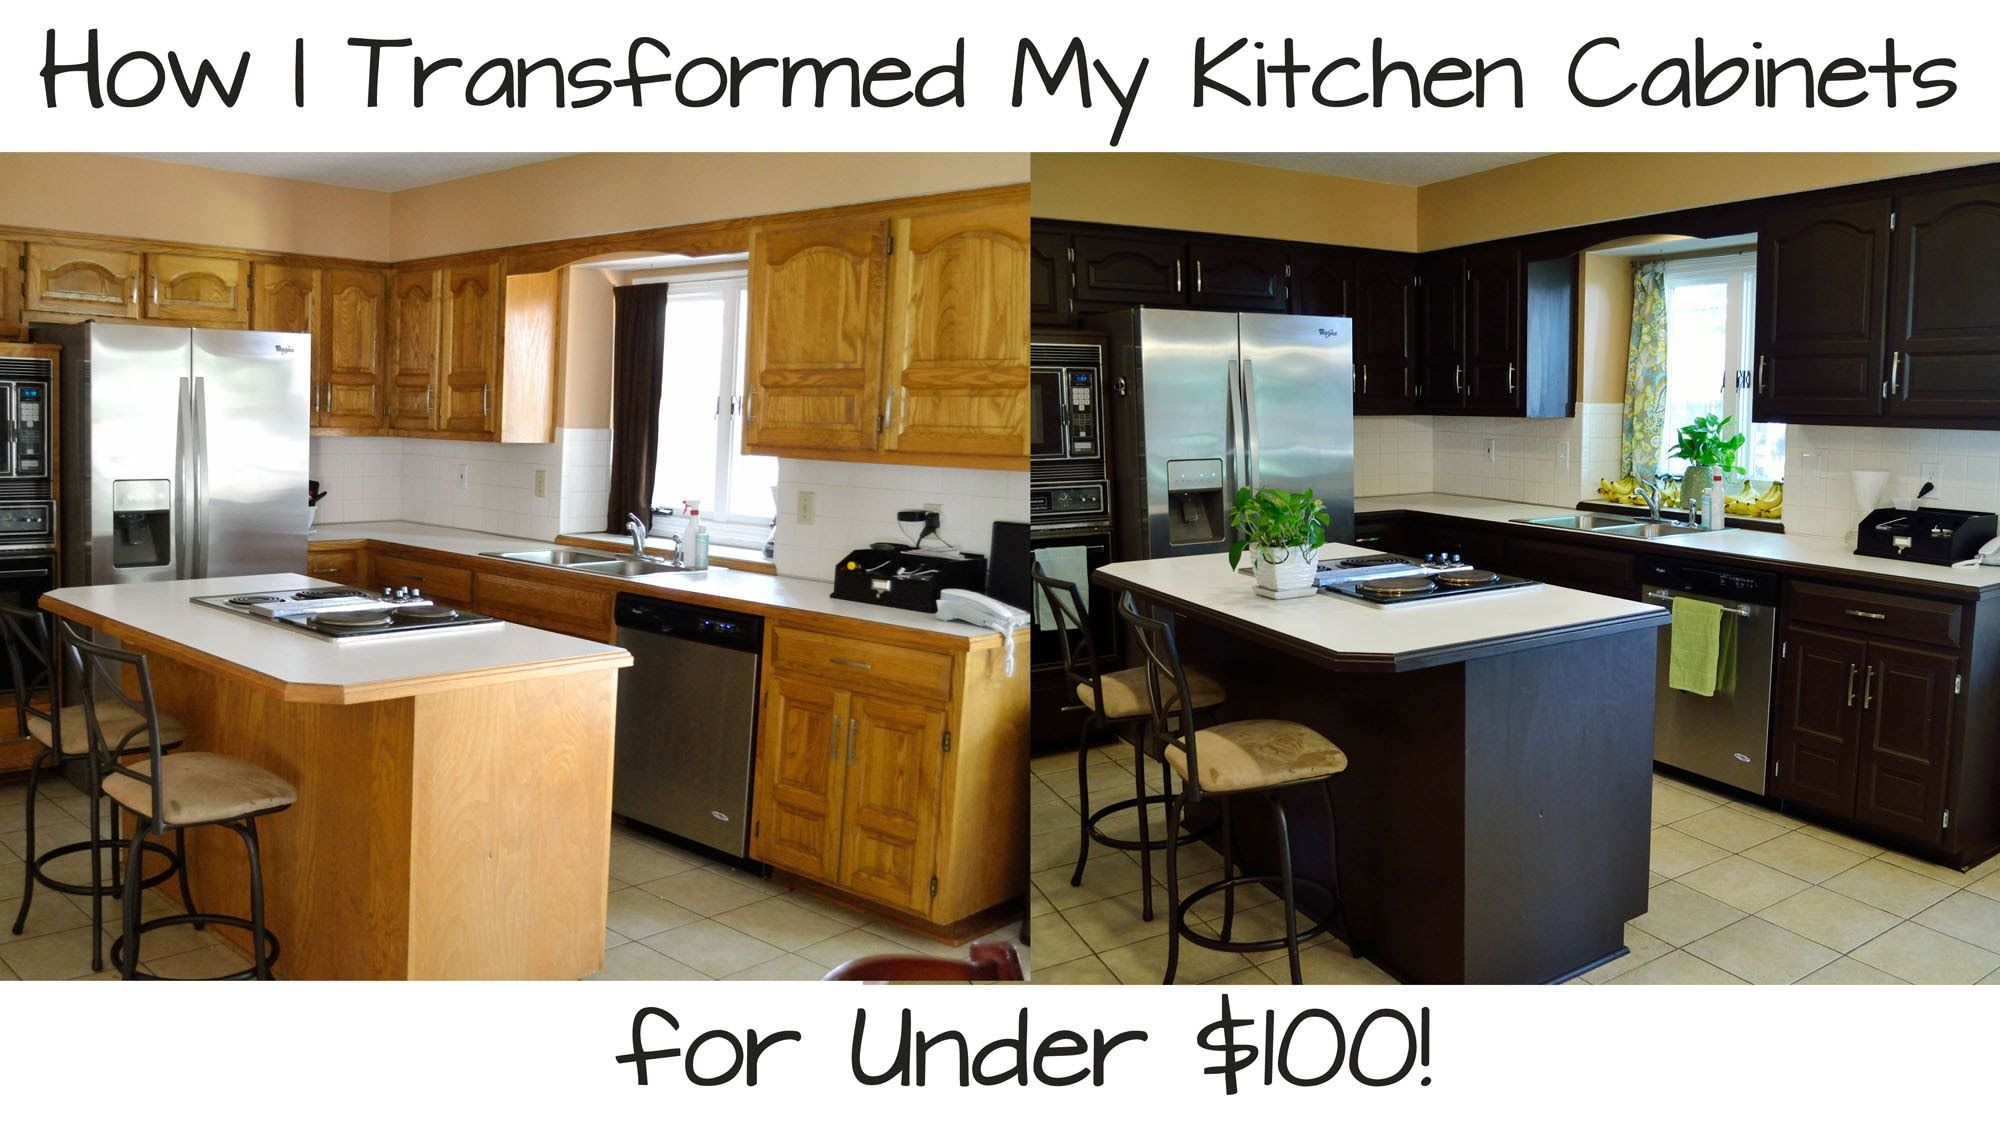 Find Out How I Transformed My Kitchen Cabinets From Old And Dated To Modern And Fresh With The Diy Kitchen Cabinets Budget Kitchen Remodel Diy Kitchen Remodel